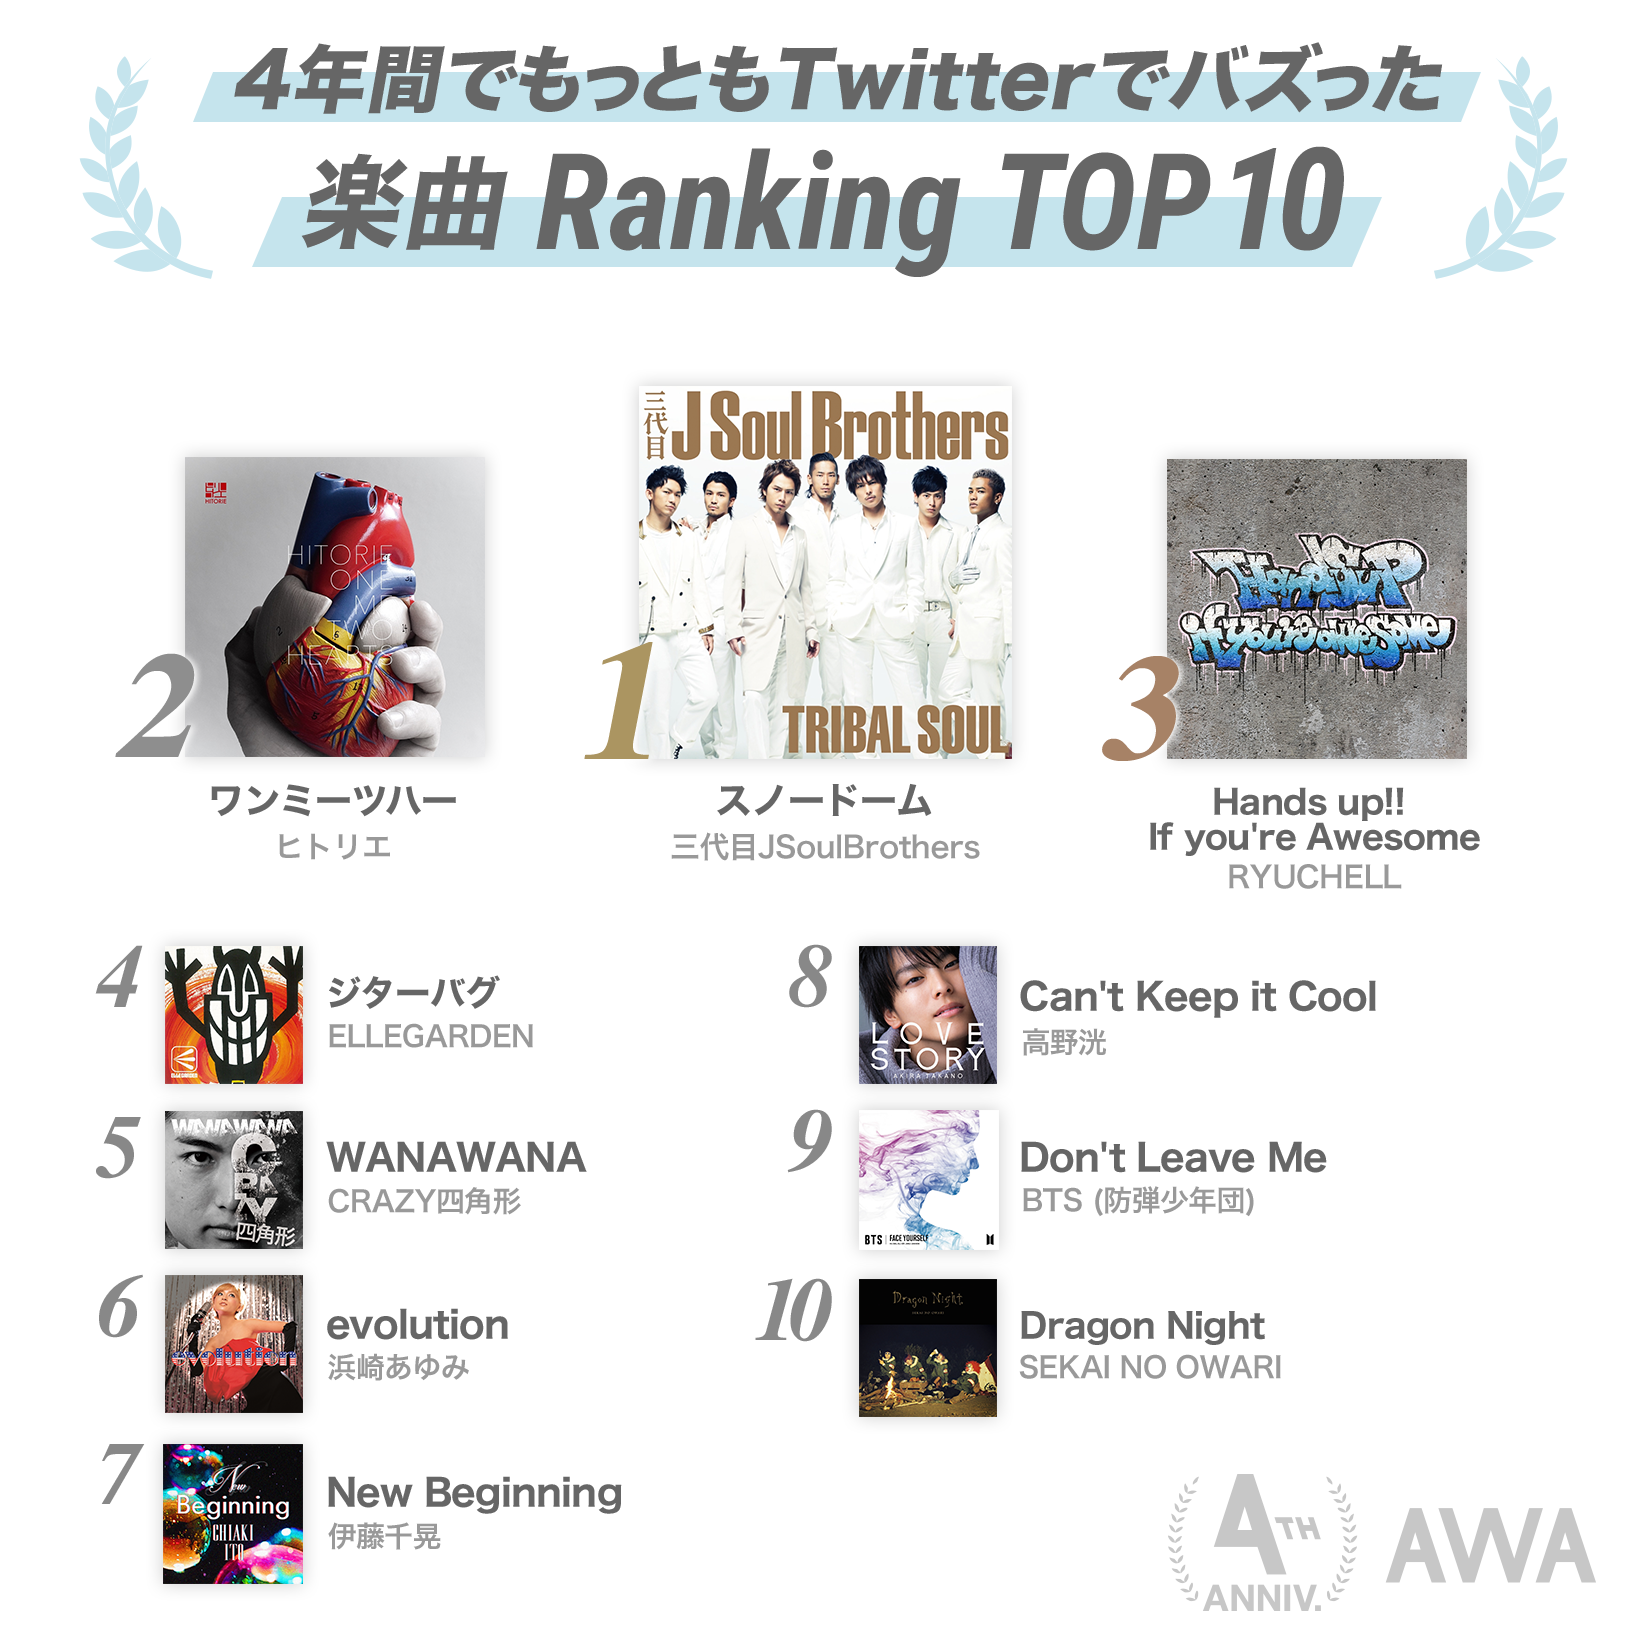 20190527_4thAnv_Ranking_04BestTwitter.png